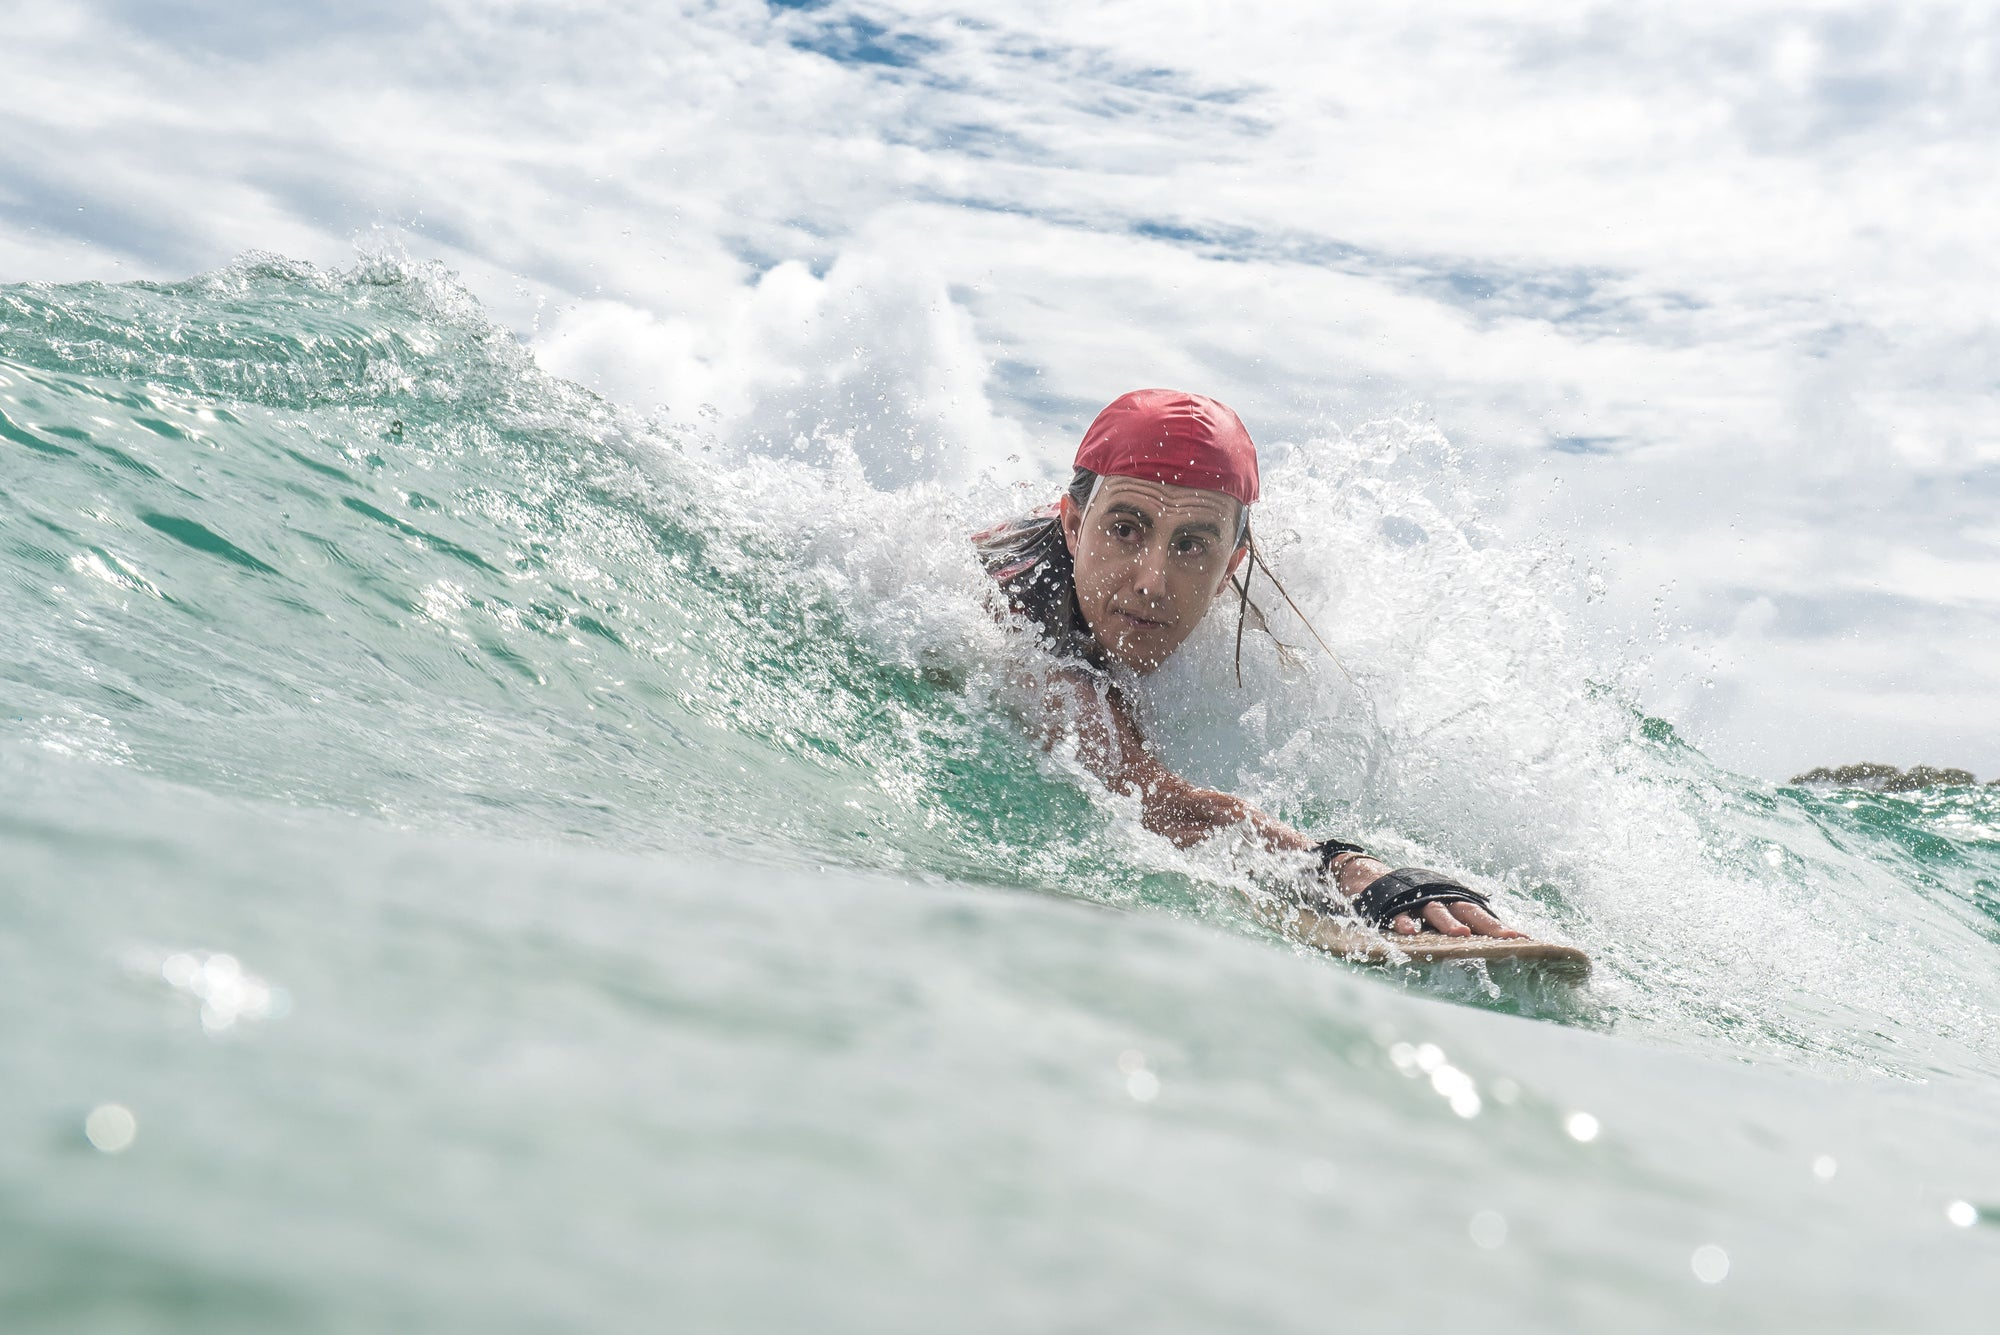 The Noosa Festival of Surfing - More Than Just a Competition